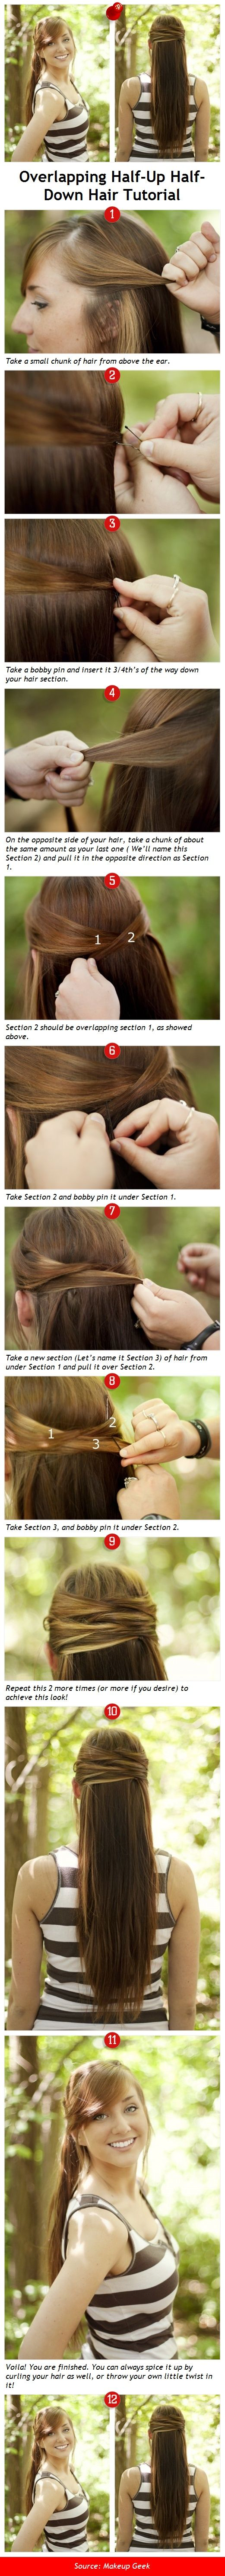 Overlapping Half-Up Half-Down Hair Tutorial. I have been searching for this forever!!! Woot!!!!!